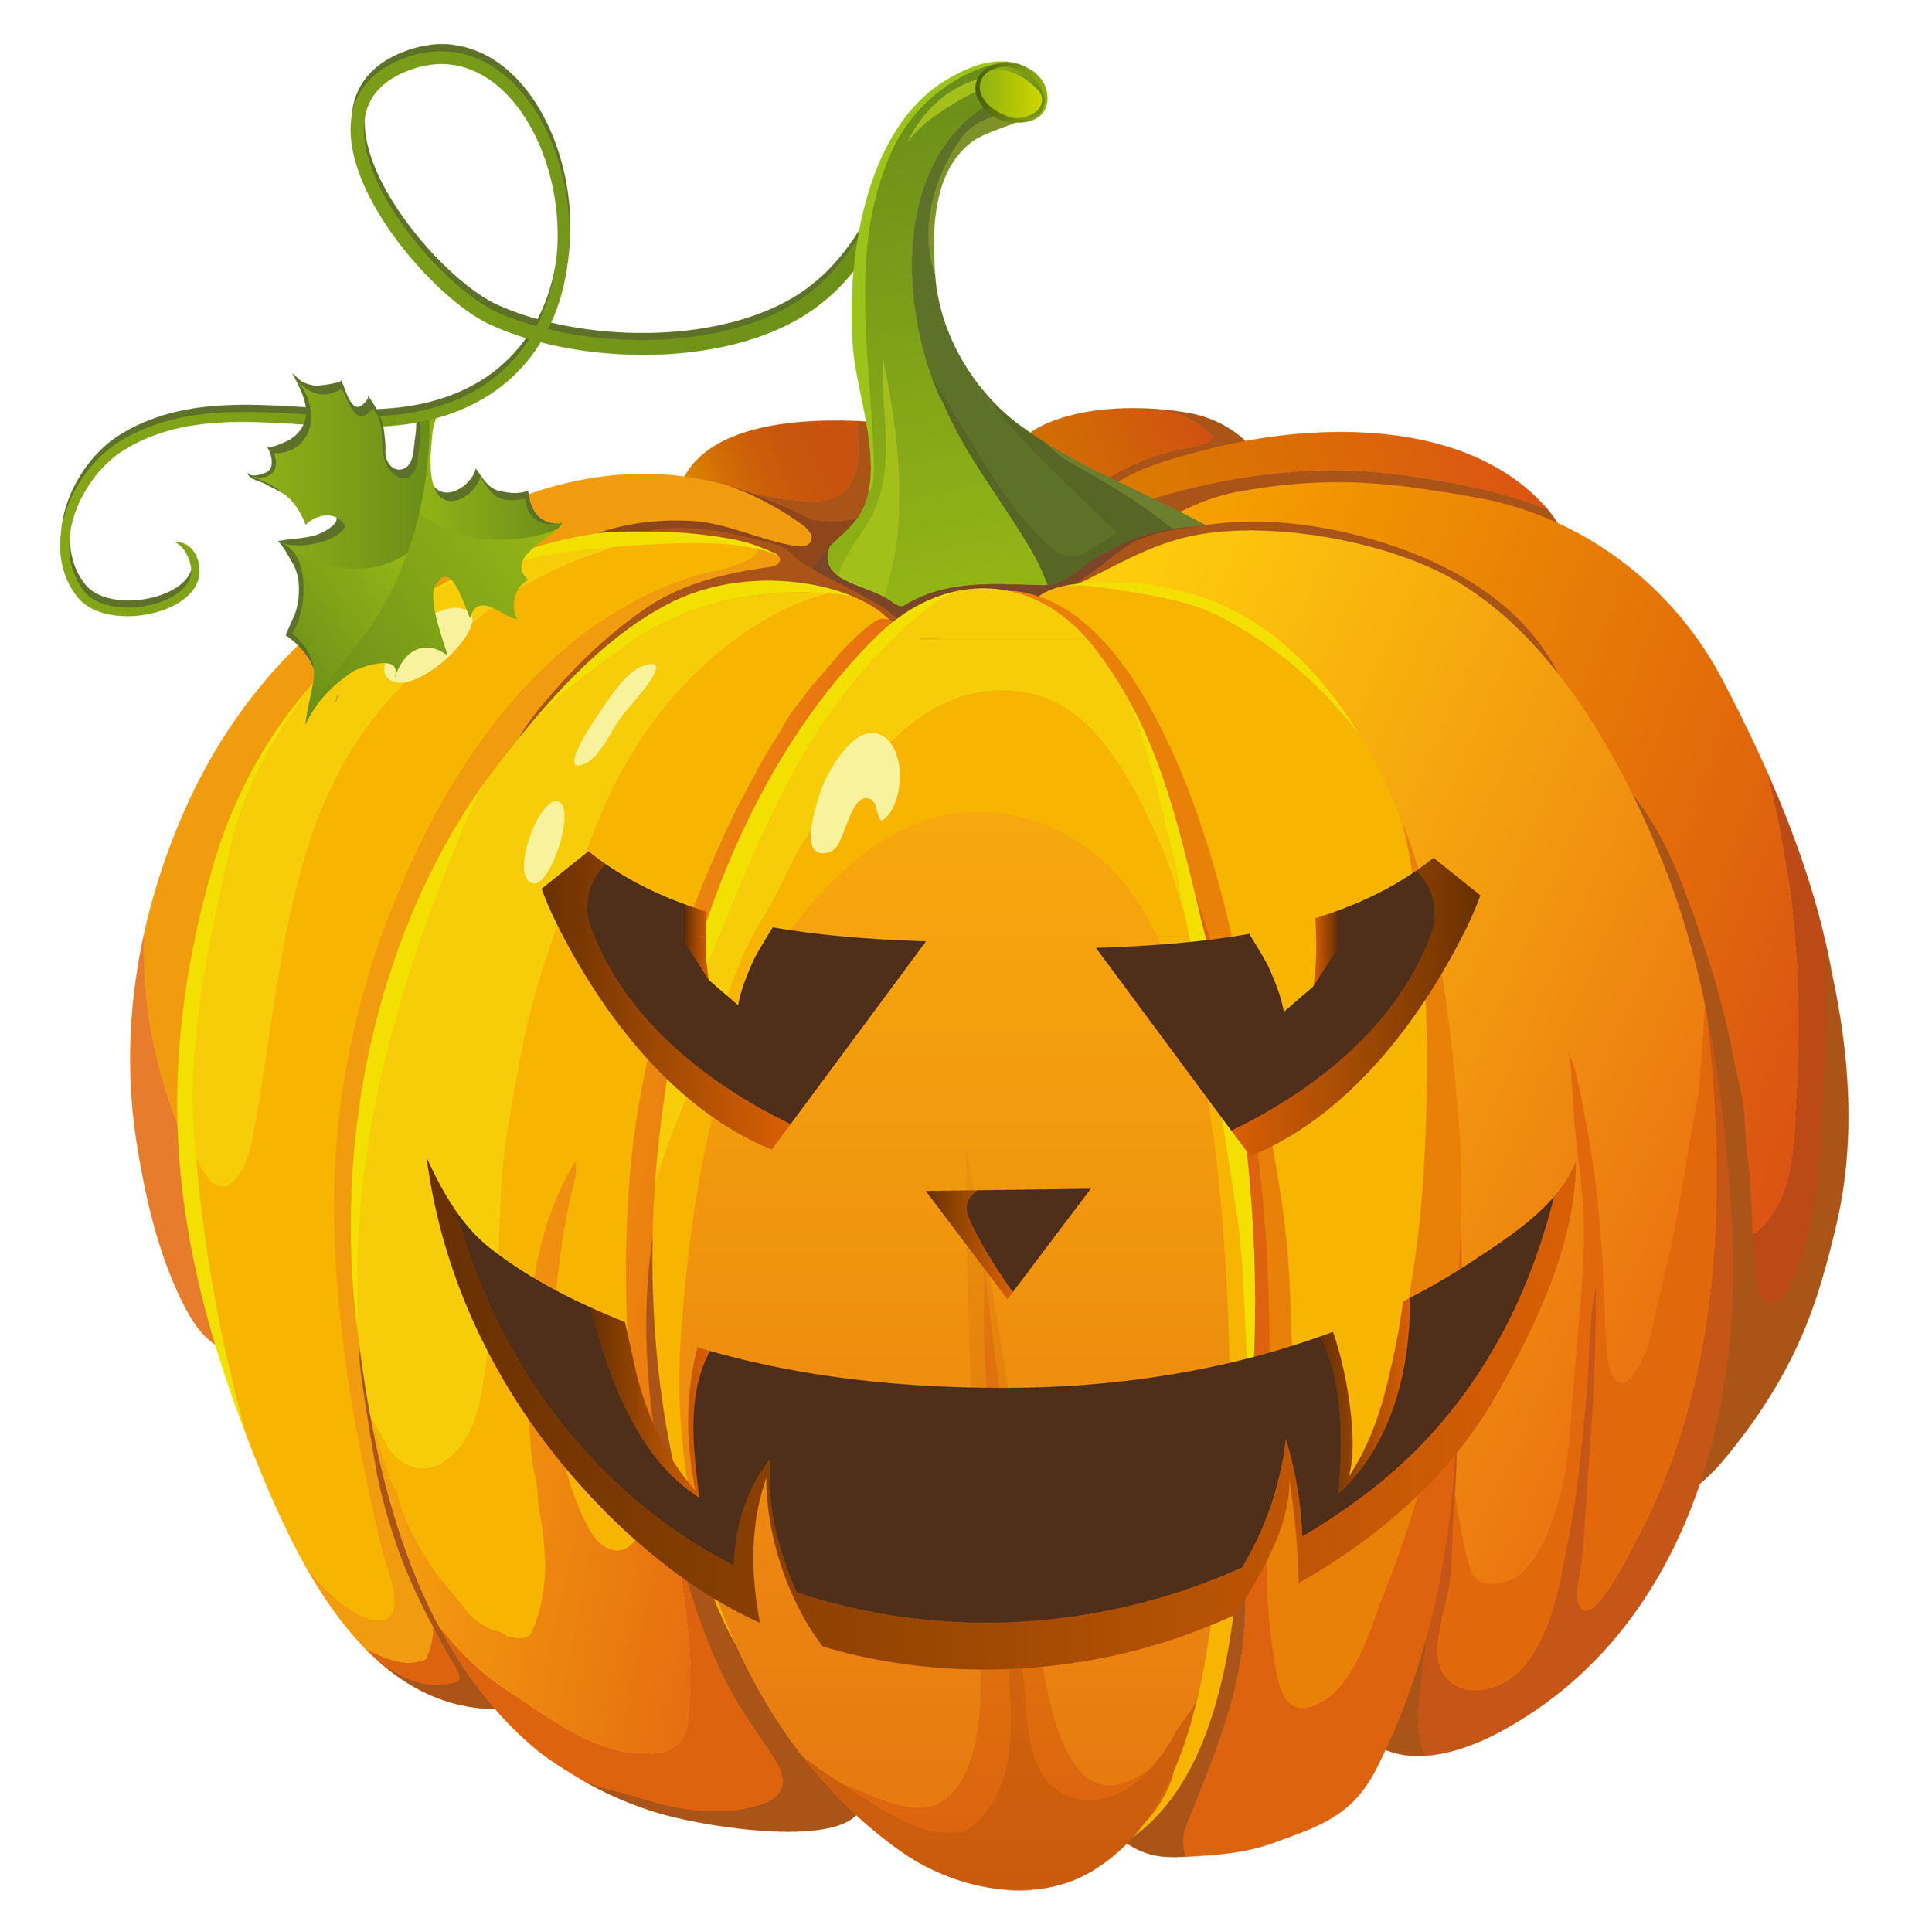 Halloween Pumpkins Clipart - Cliparts.co